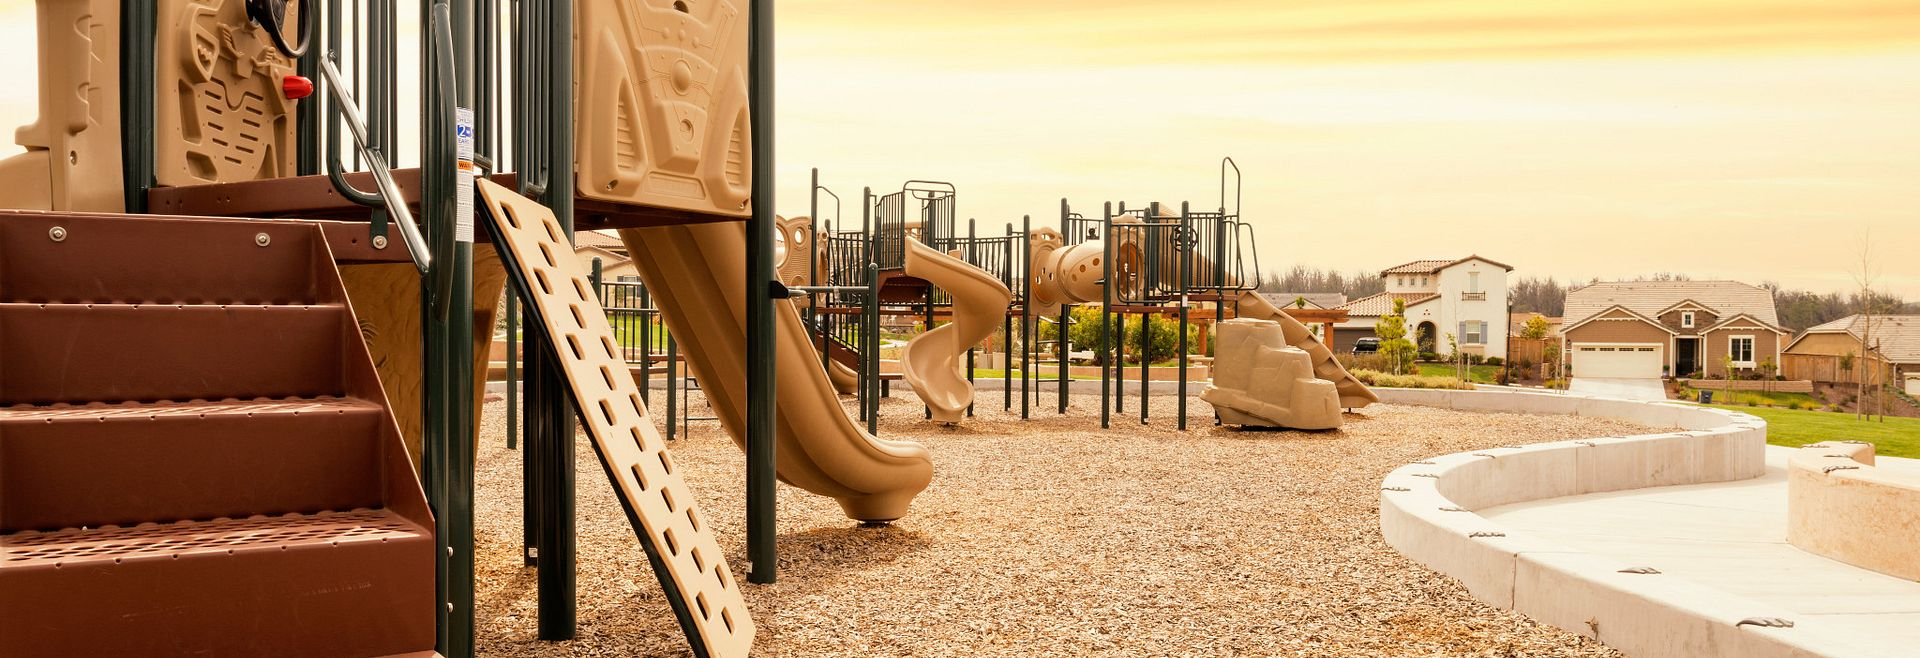 Shea Homes Rice Ranch Community Playground